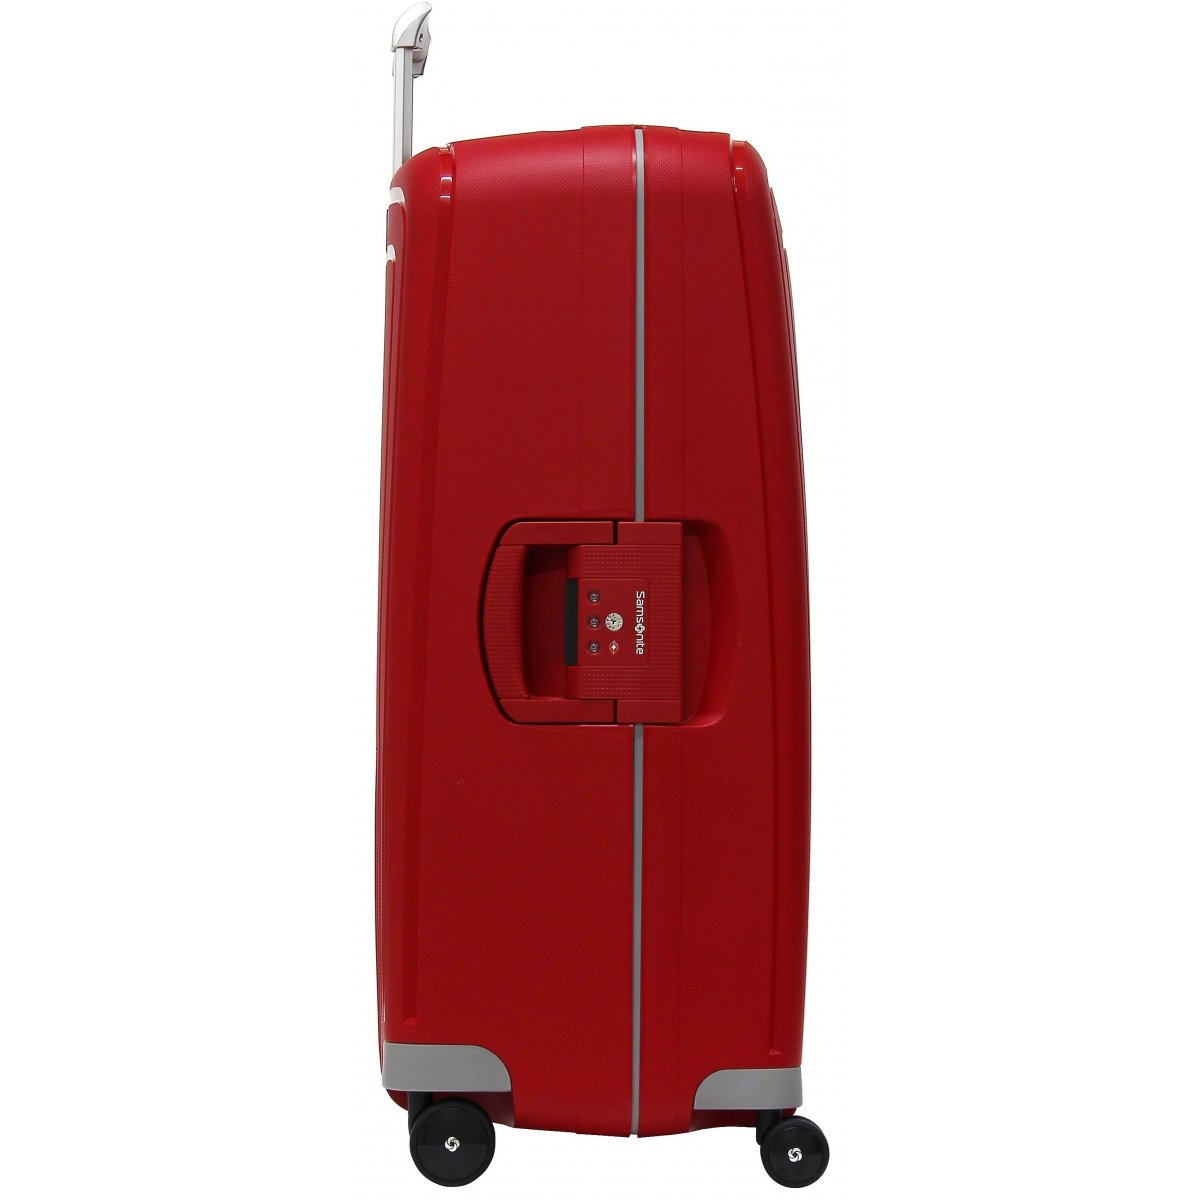 valise samsonite s 39 cure spinner 75cm scure08 couleur principale rouge promotion. Black Bedroom Furniture Sets. Home Design Ideas